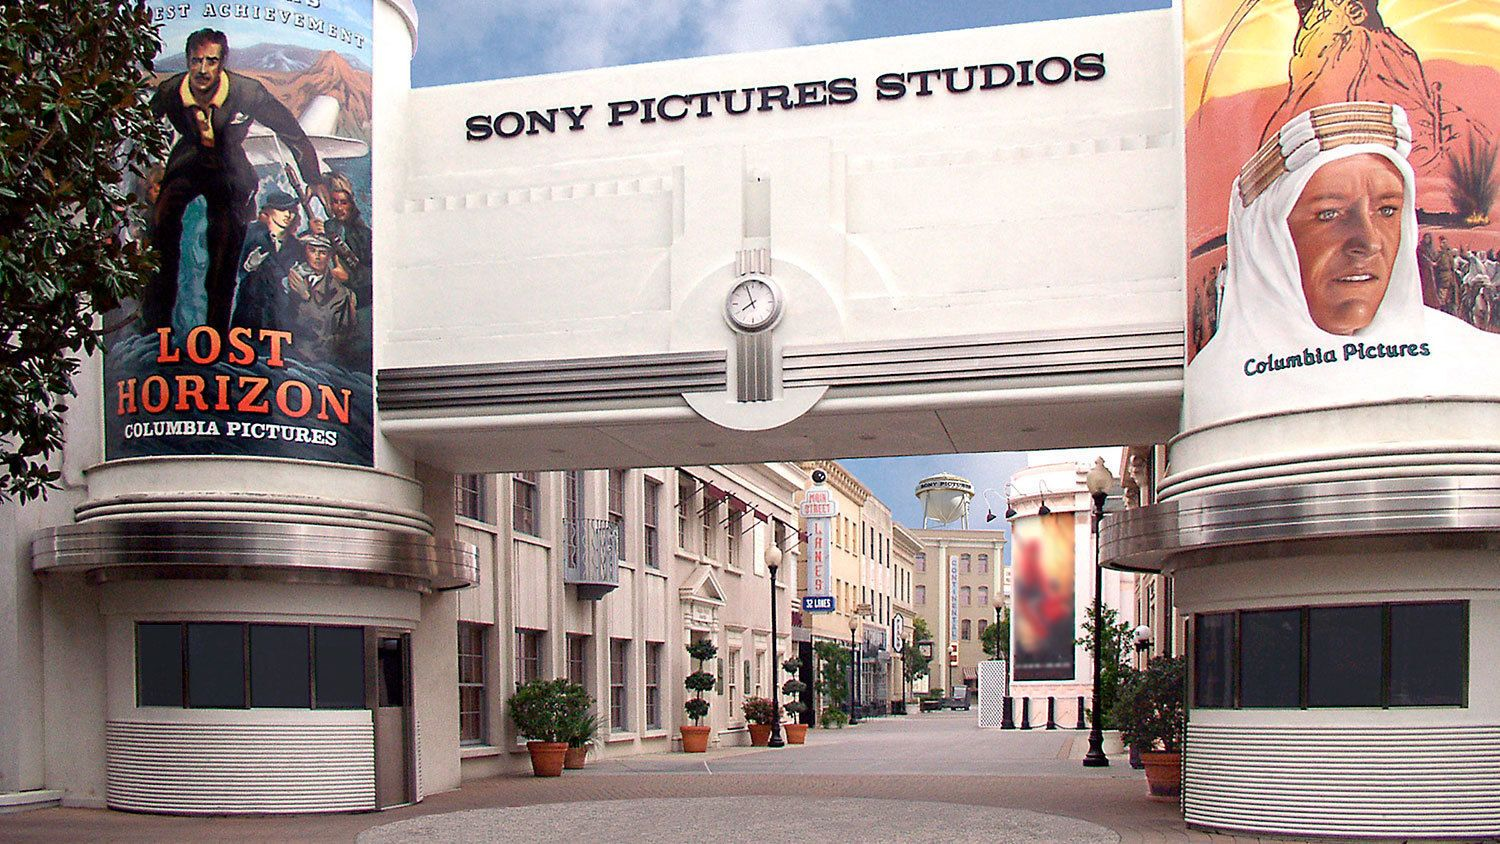 Sony Pictures Studios Entrance.